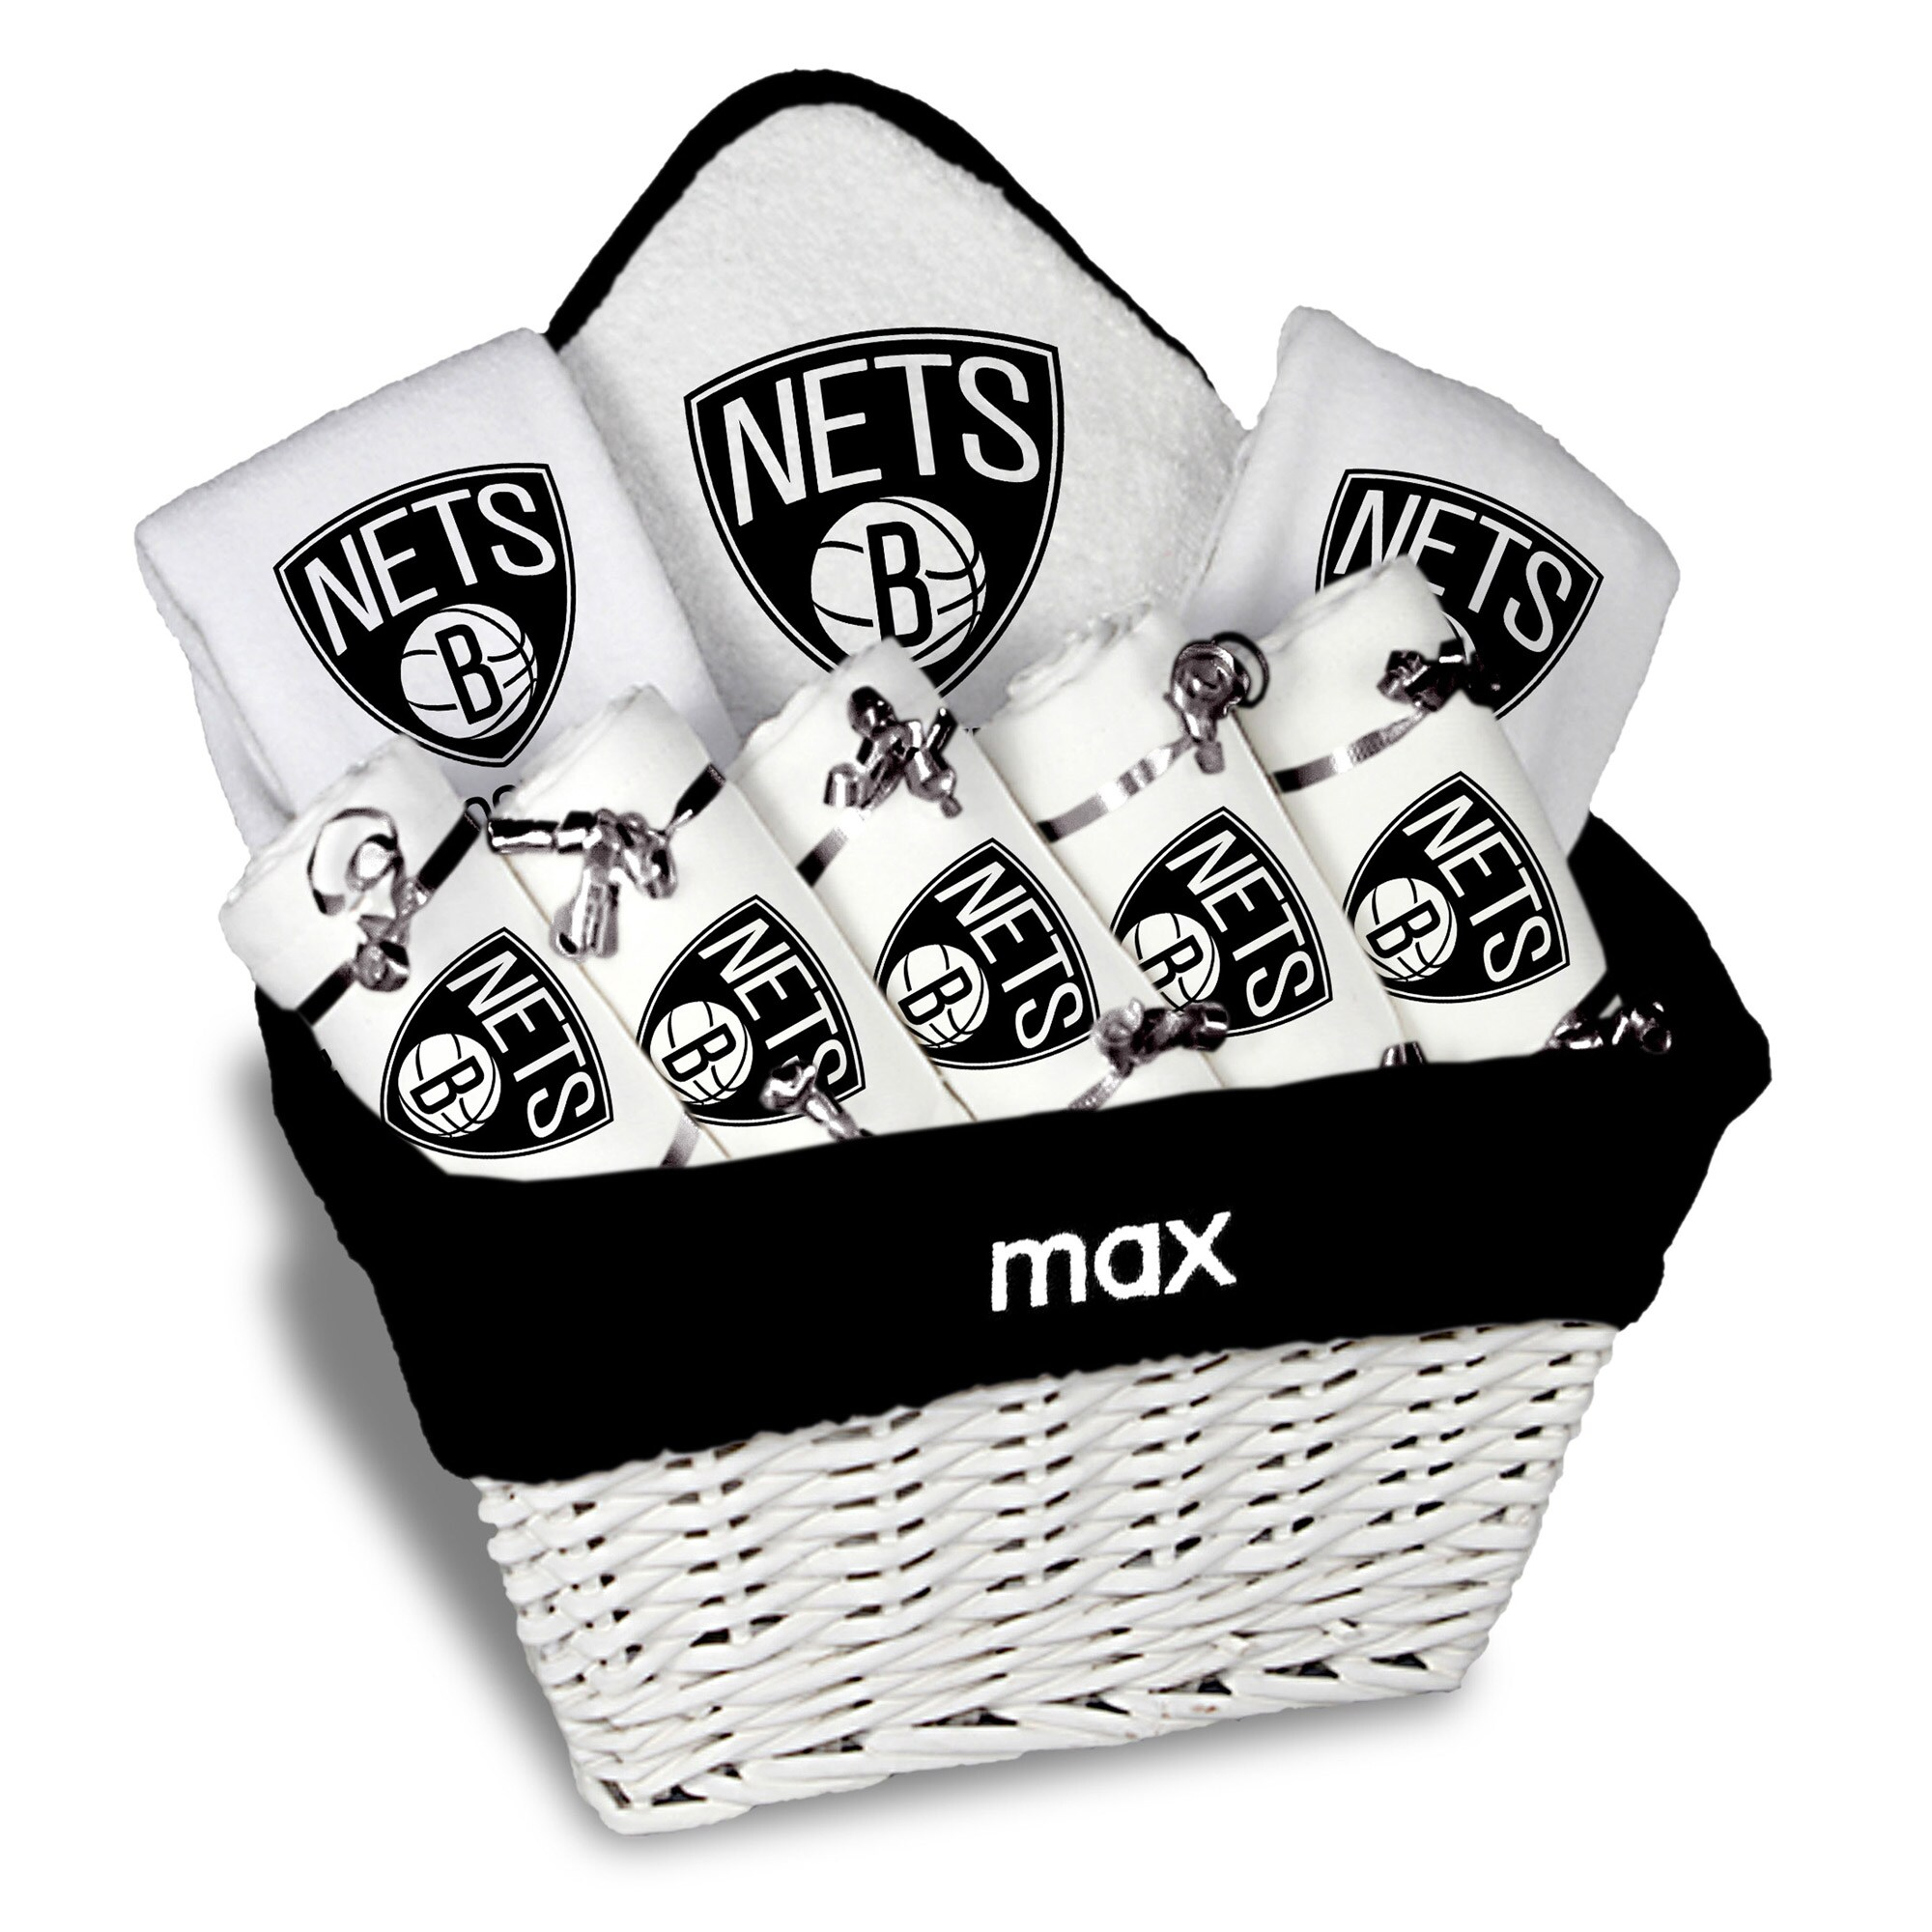 Brooklyn Nets Newborn & Infant Personalized Large Gift Basket - White